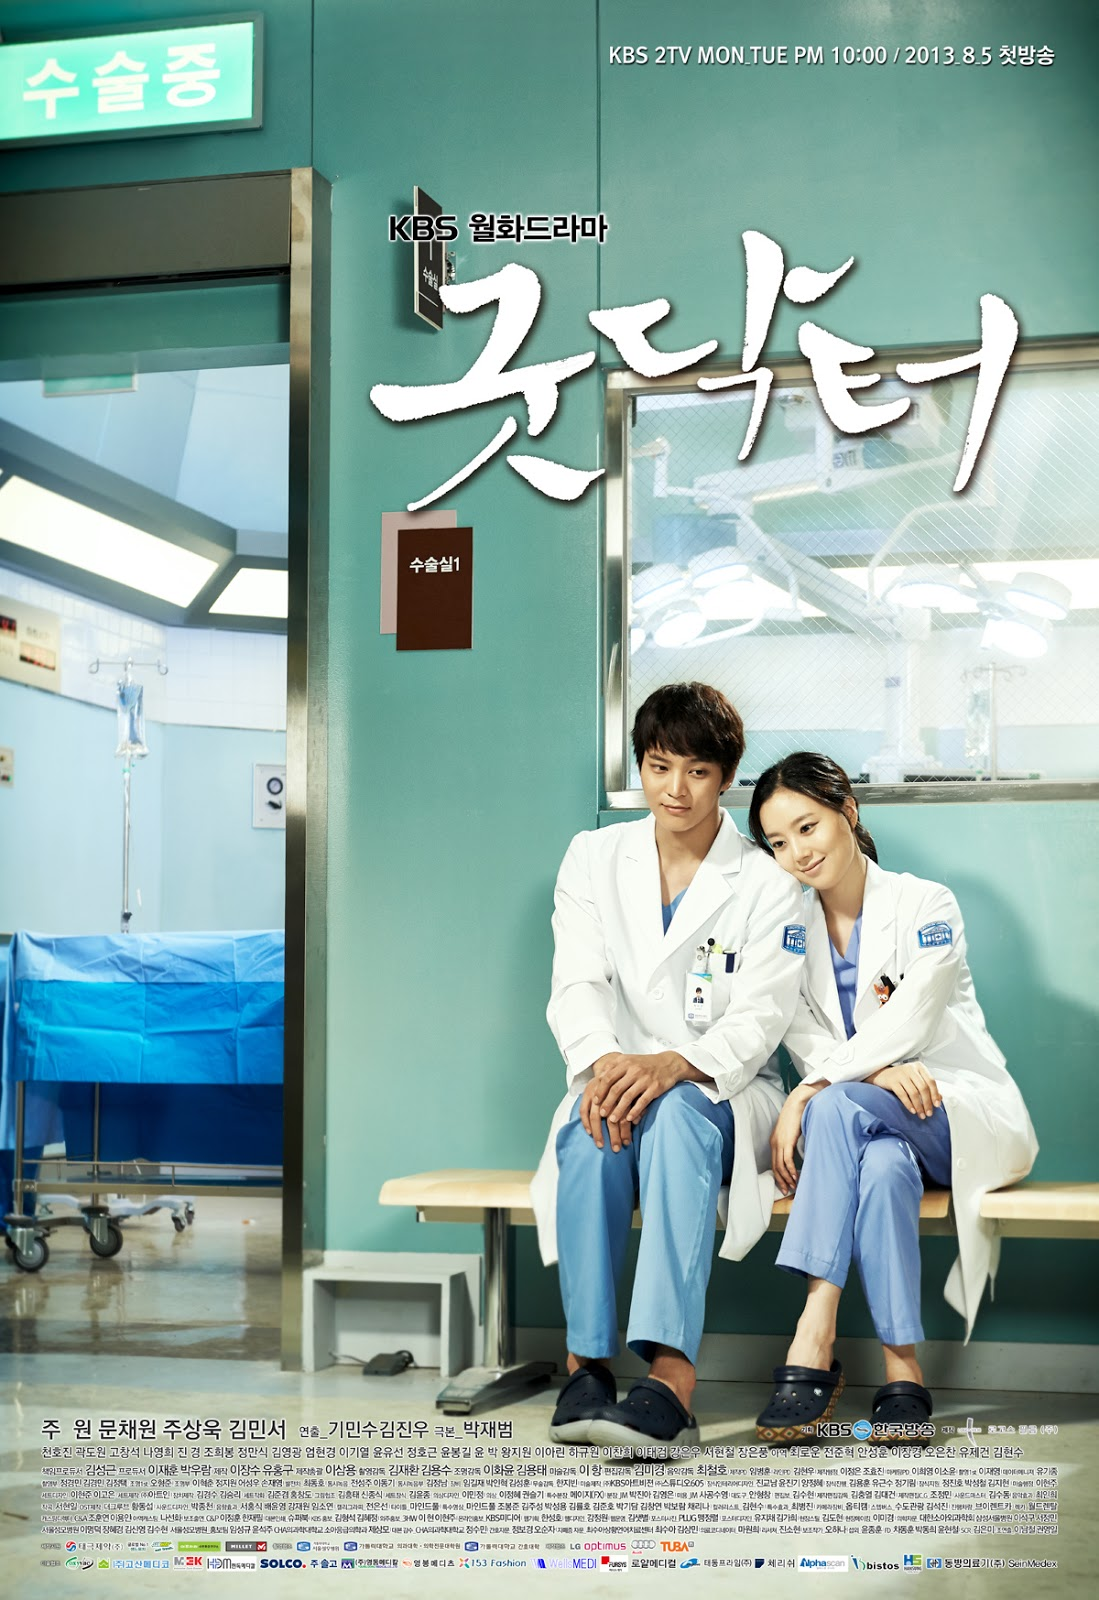 36482-muon-sac-cuoc-doi-good-doctor-poster